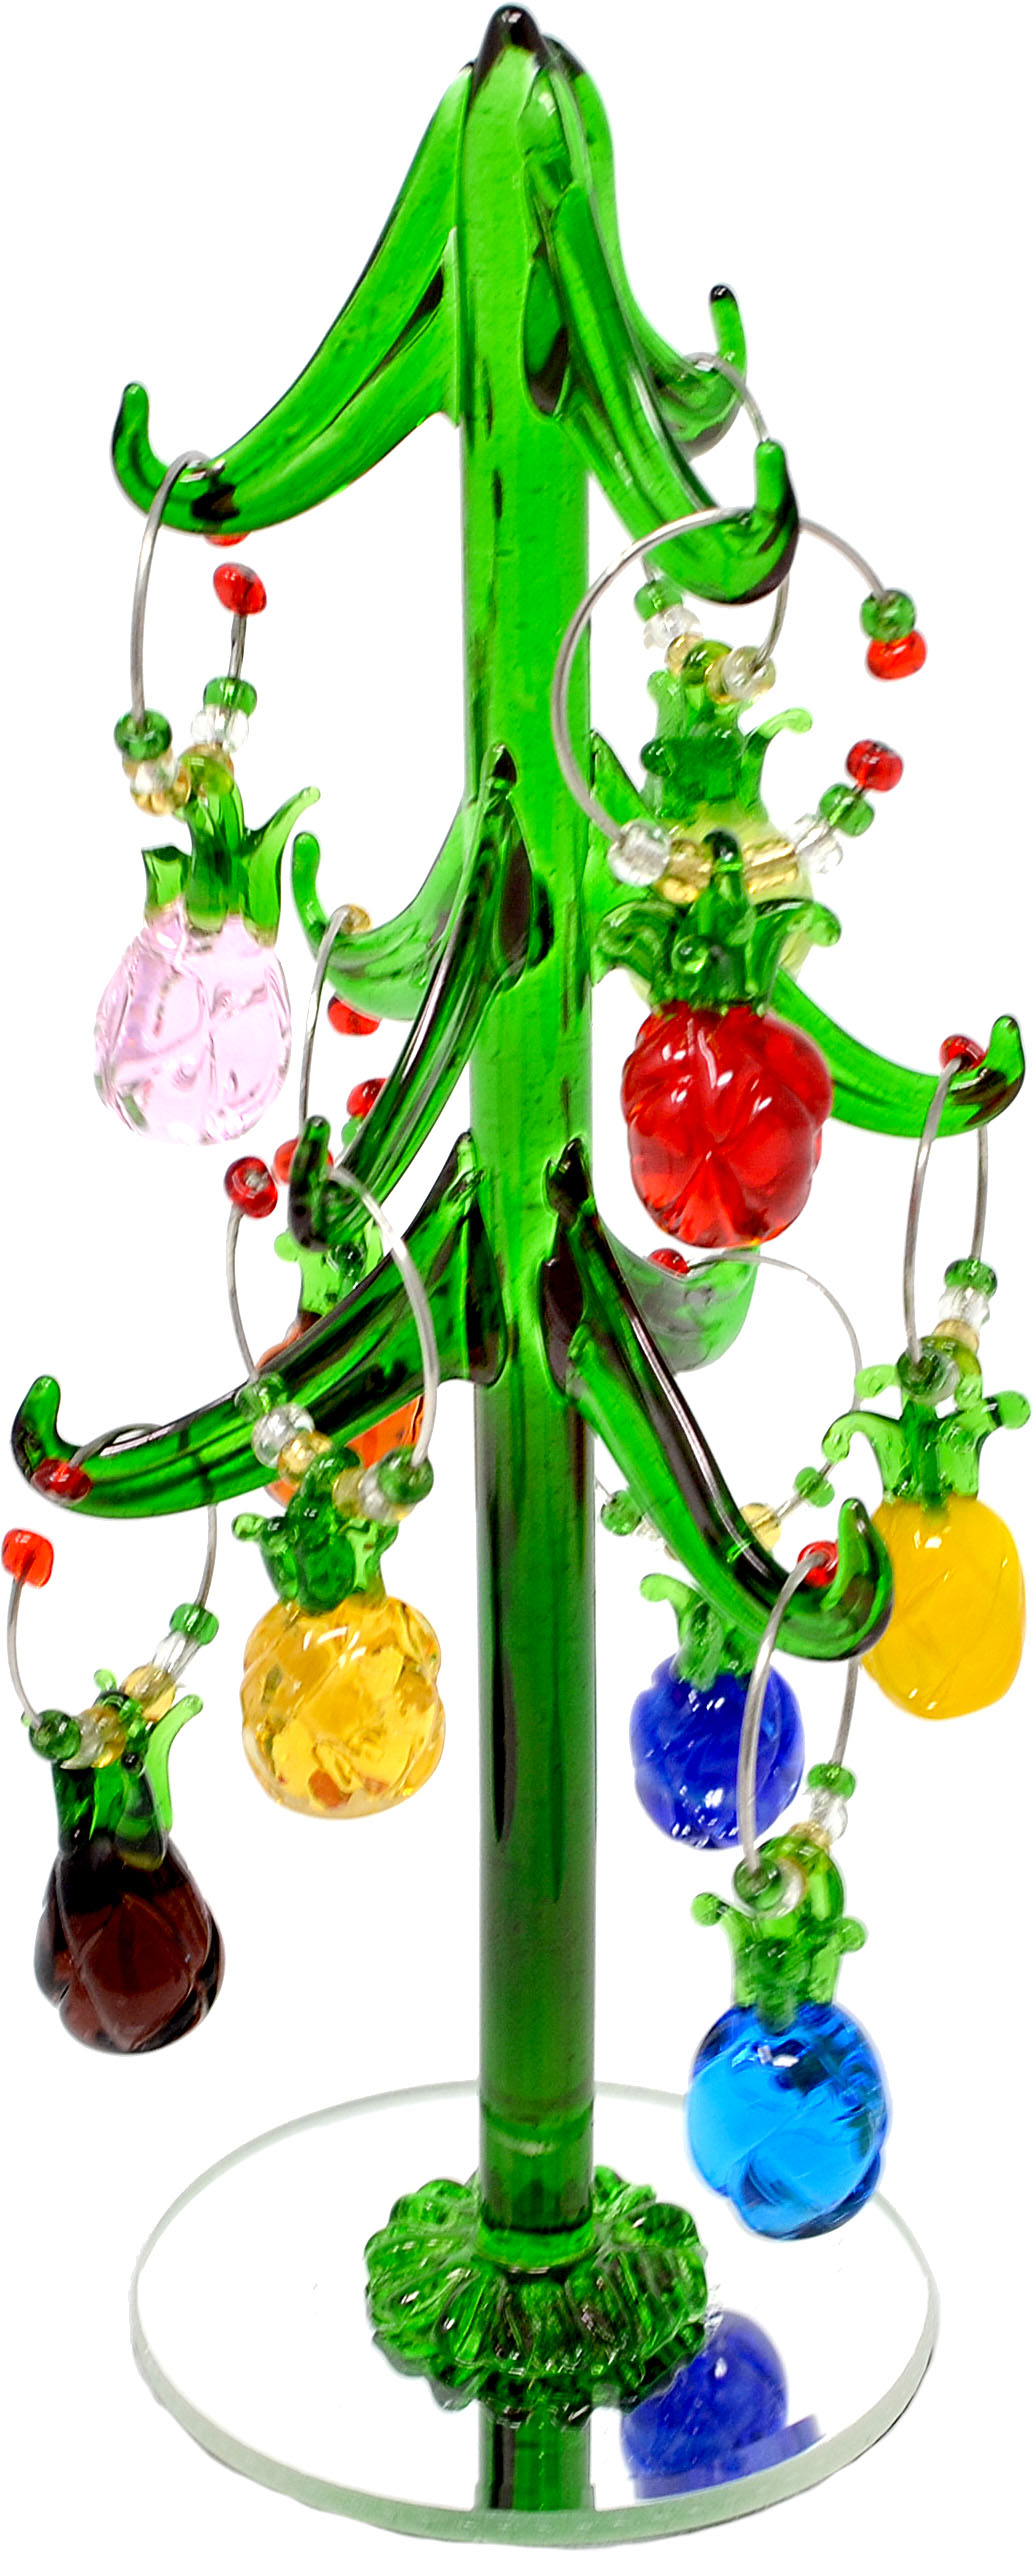 Glass Pineapple Wine Charm Tree 8 inch with 9 ornaments PVC